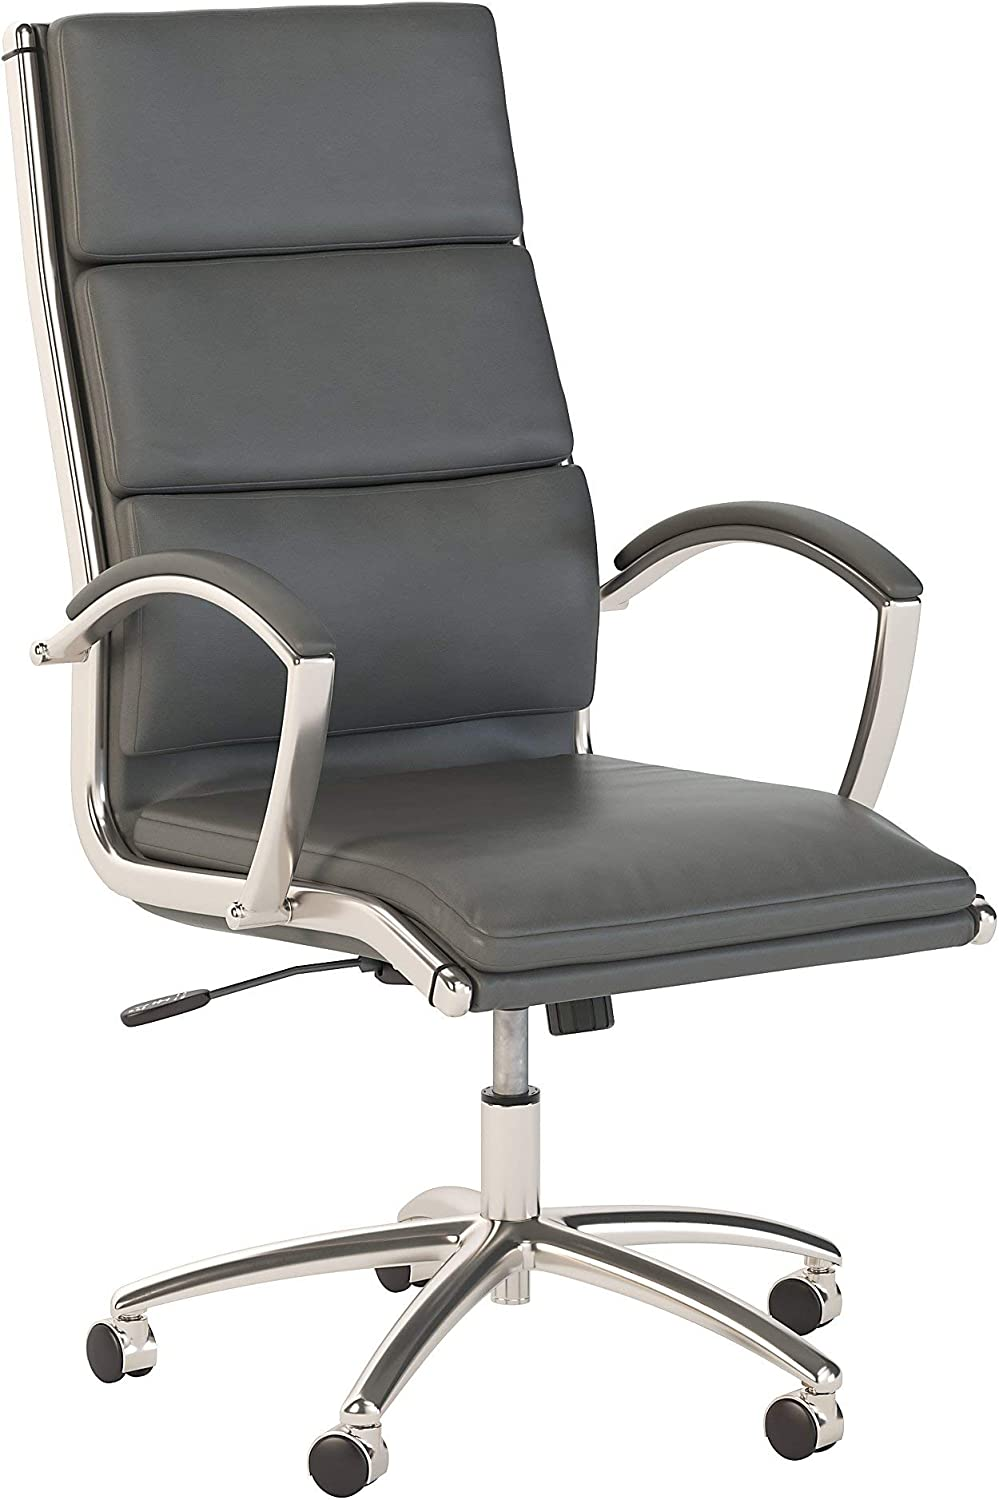 Bush Business Furniture 400 Series High Back Leather Executive Office Chair in Dark Gray